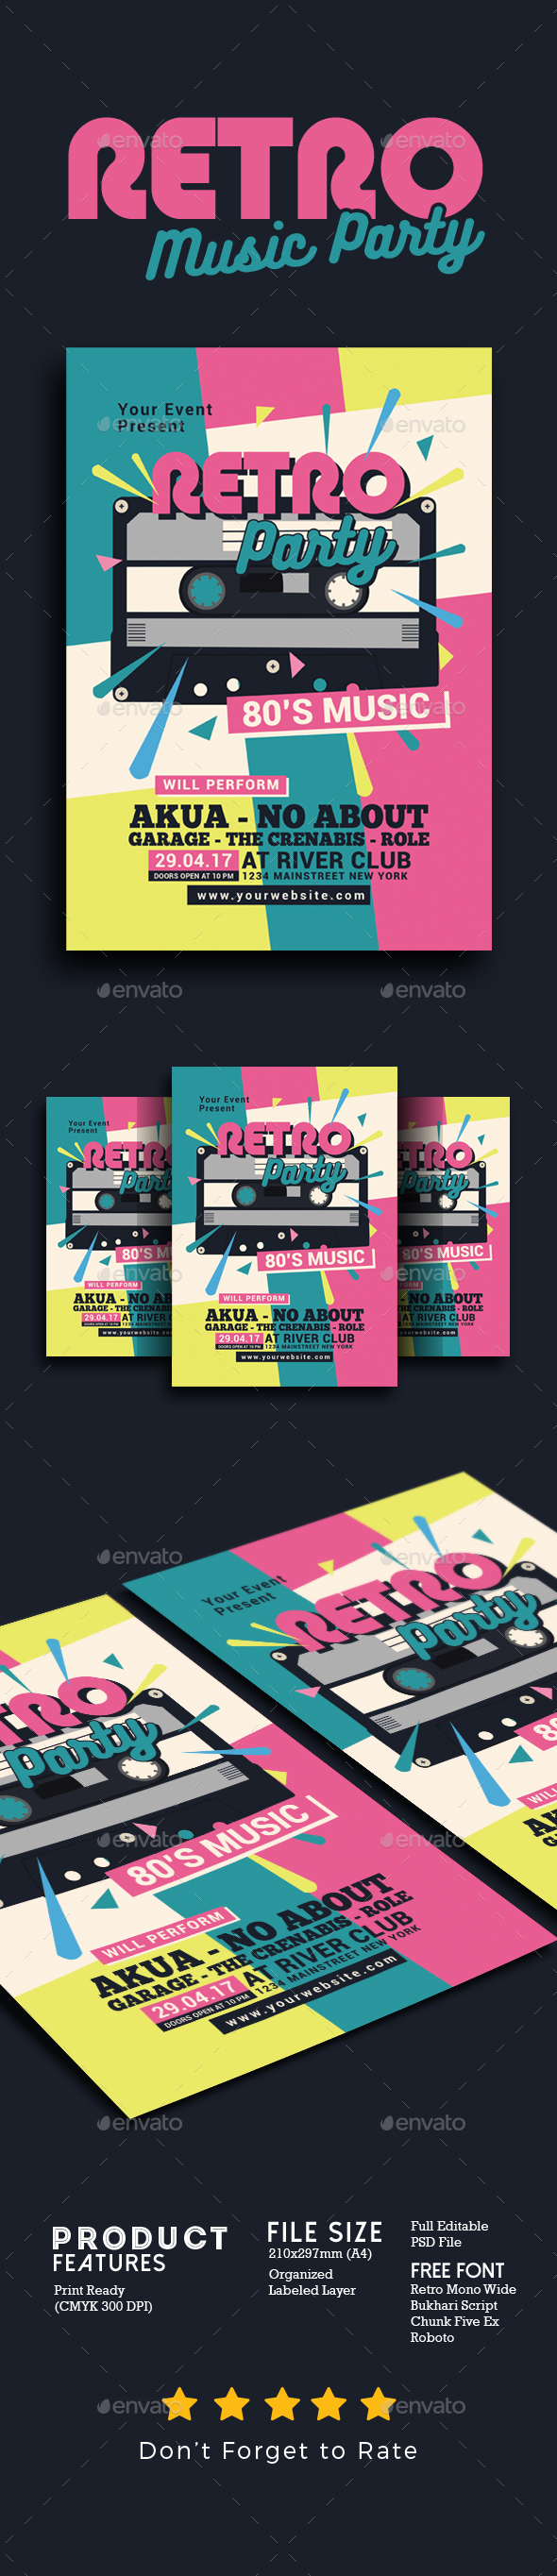 80's Retro Music Party Cassette - Events Flyers